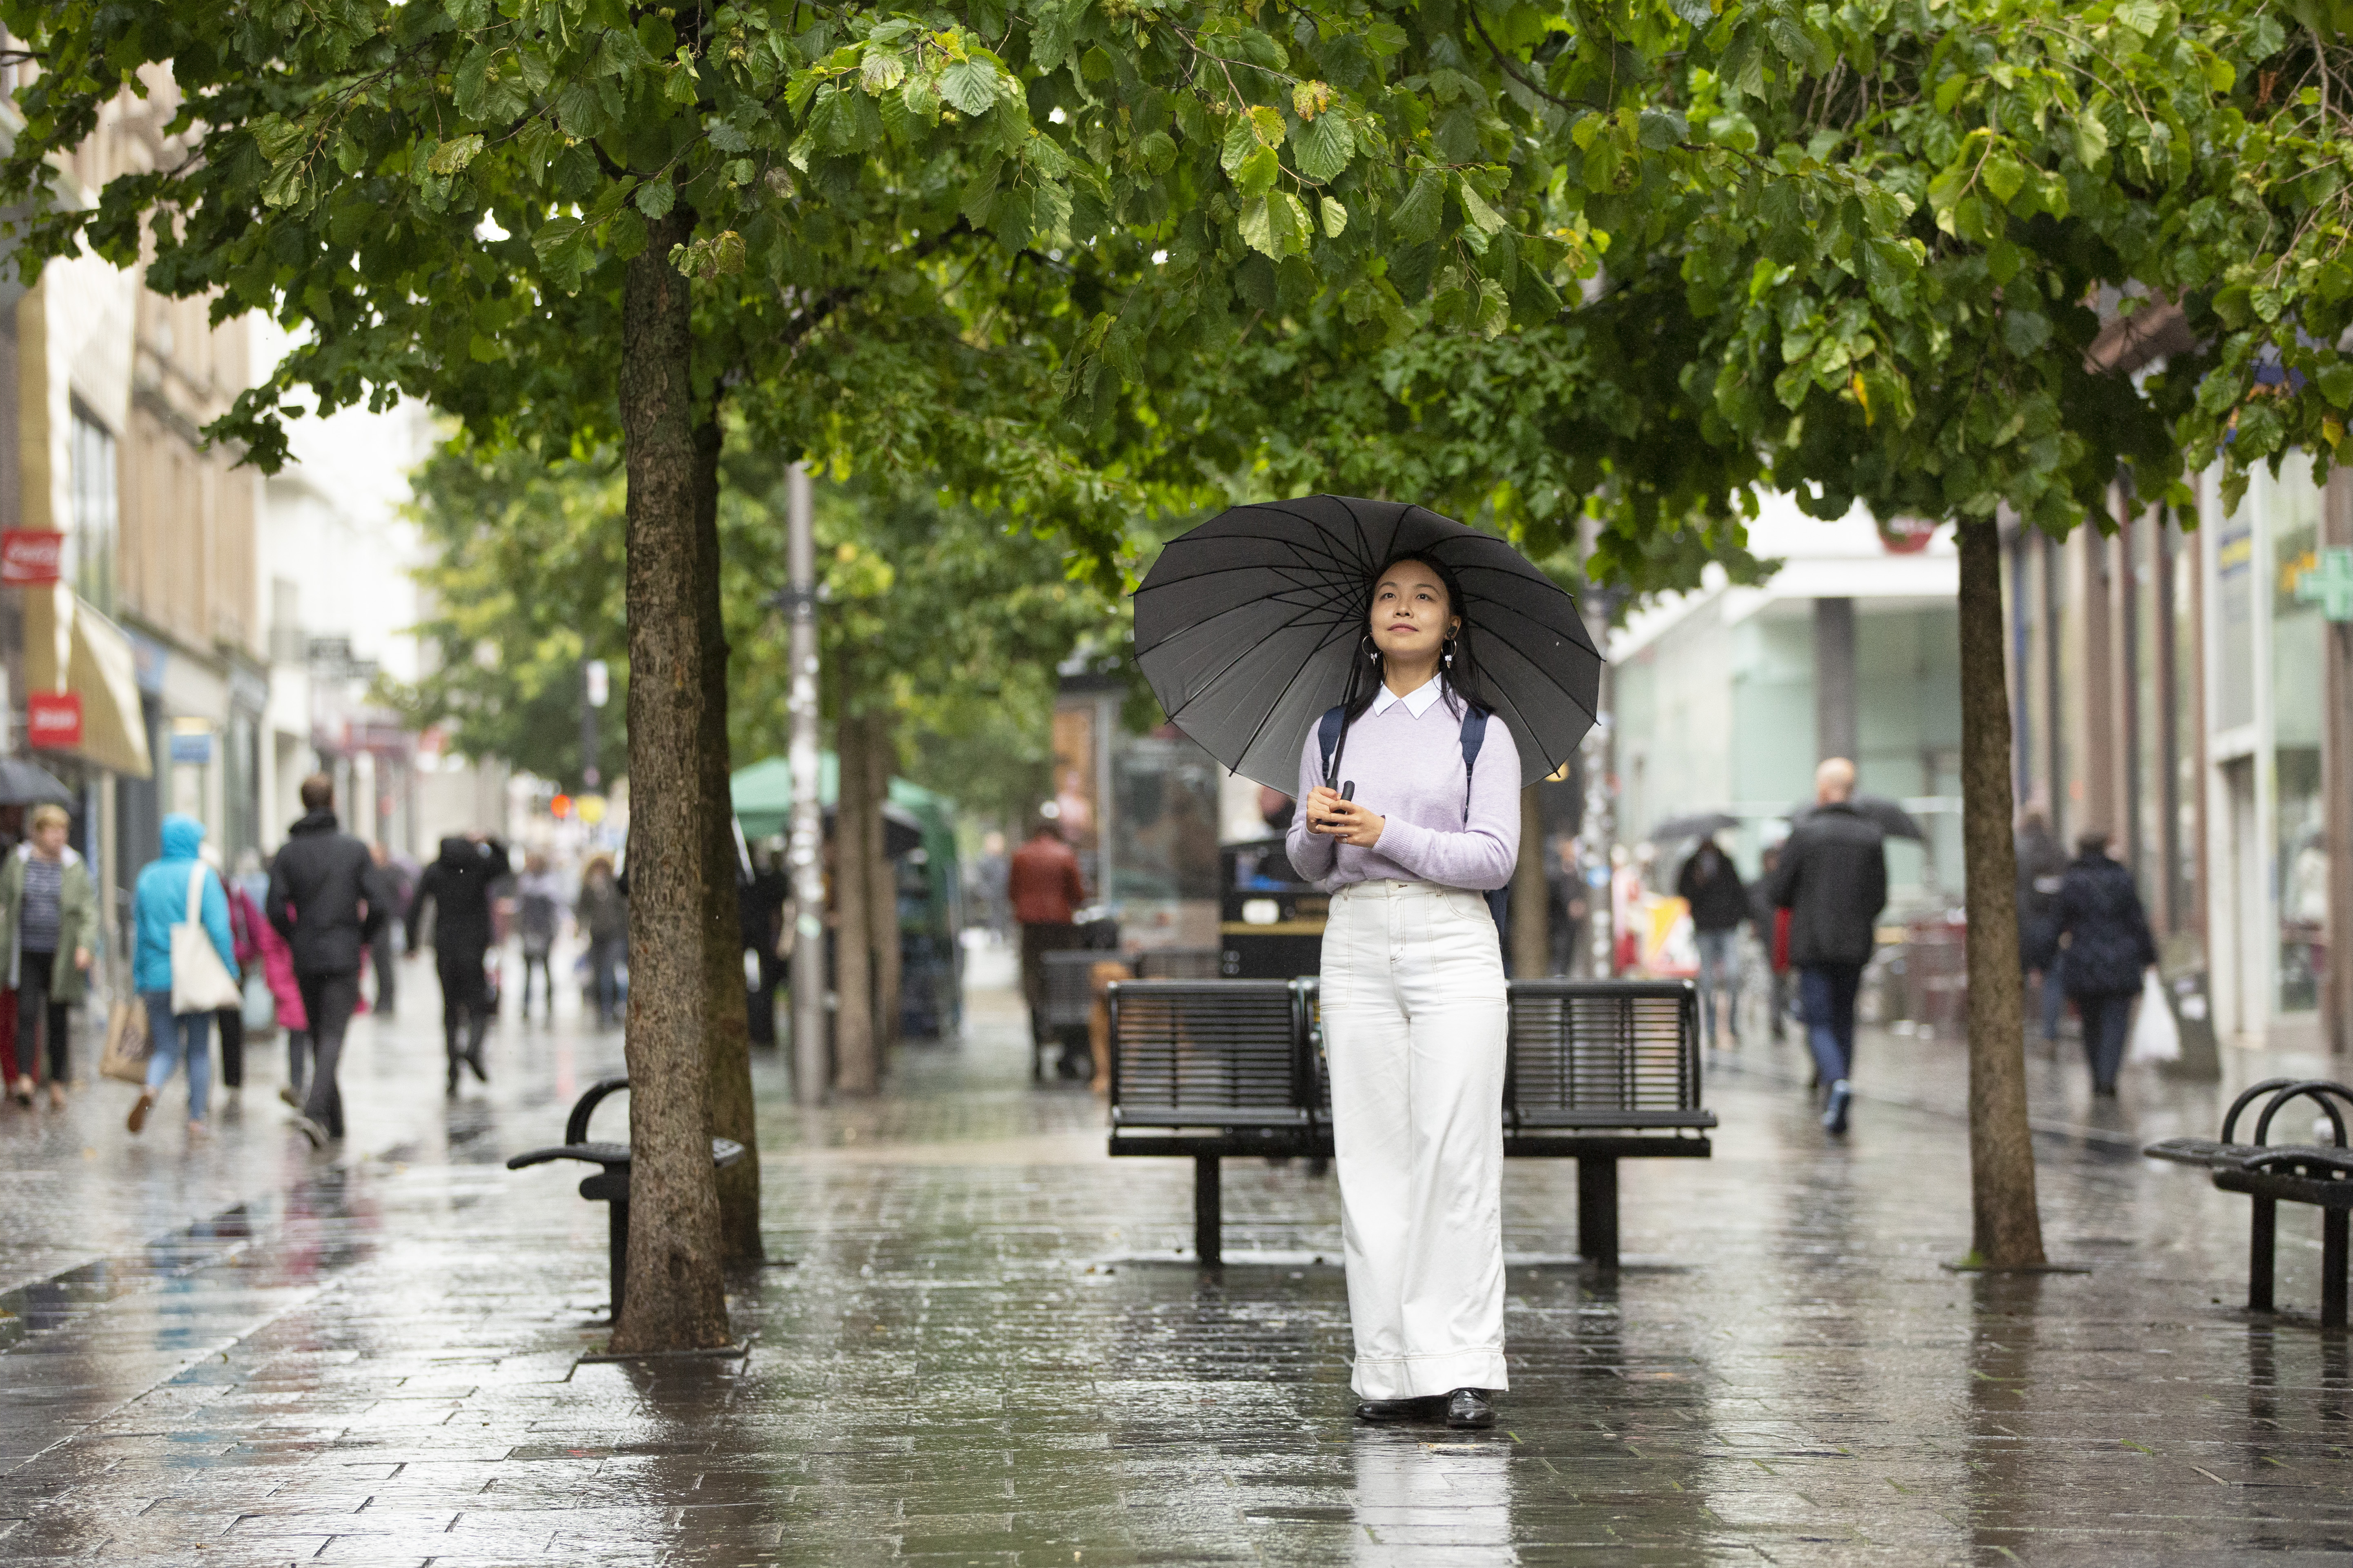 £7.2m has been spent on public realm improvements for Sauchiehall Street